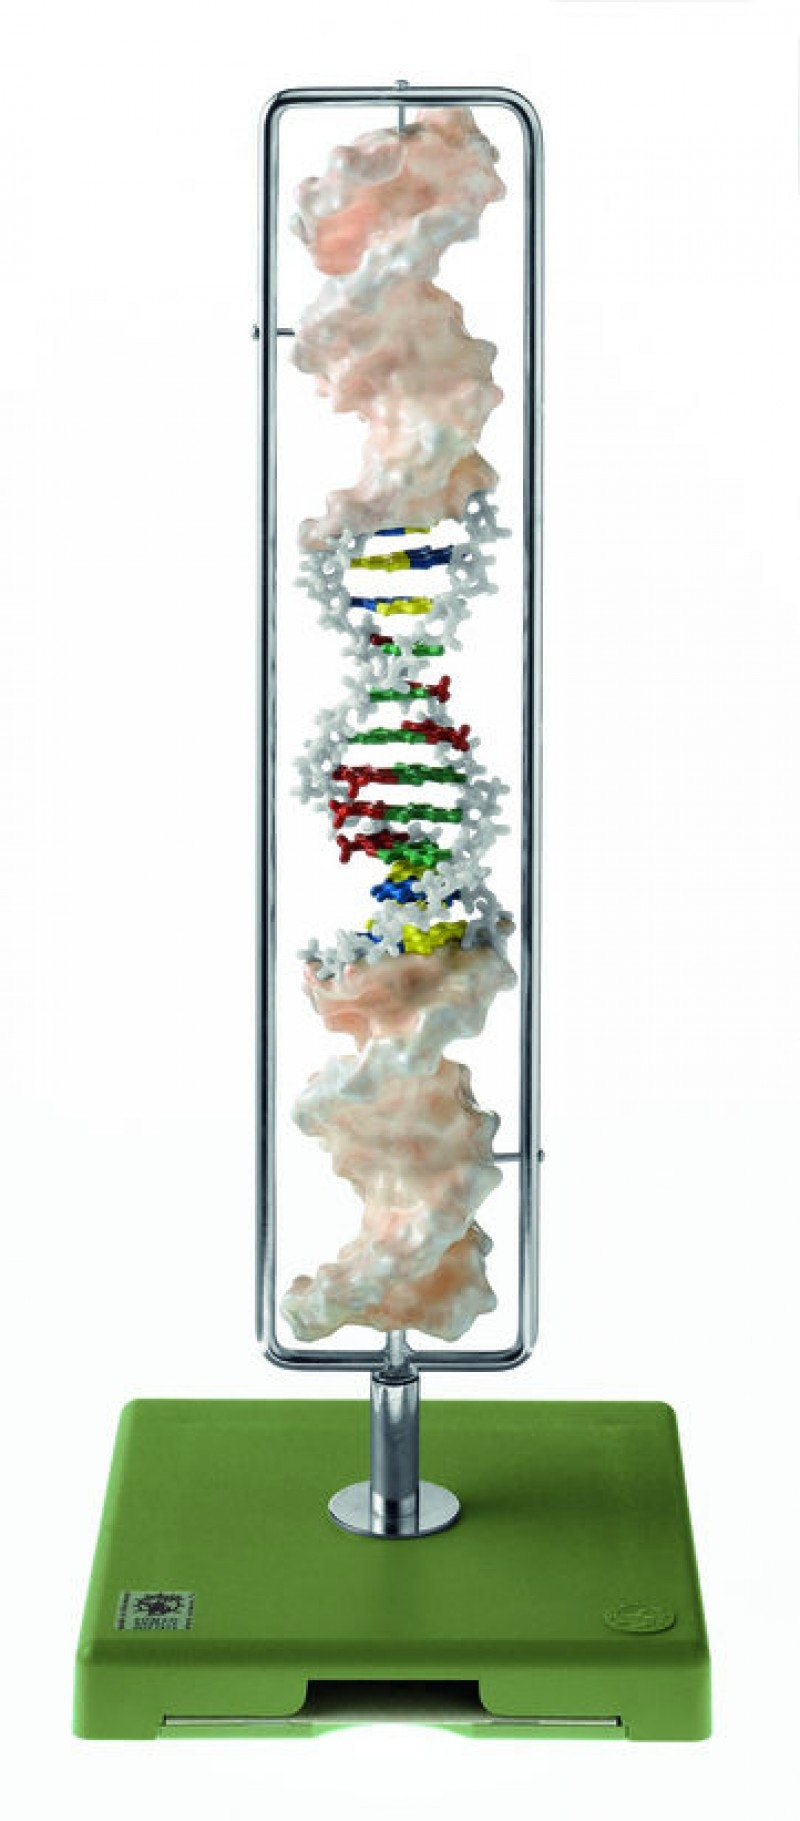 SOMSO DNA dobbel helix model